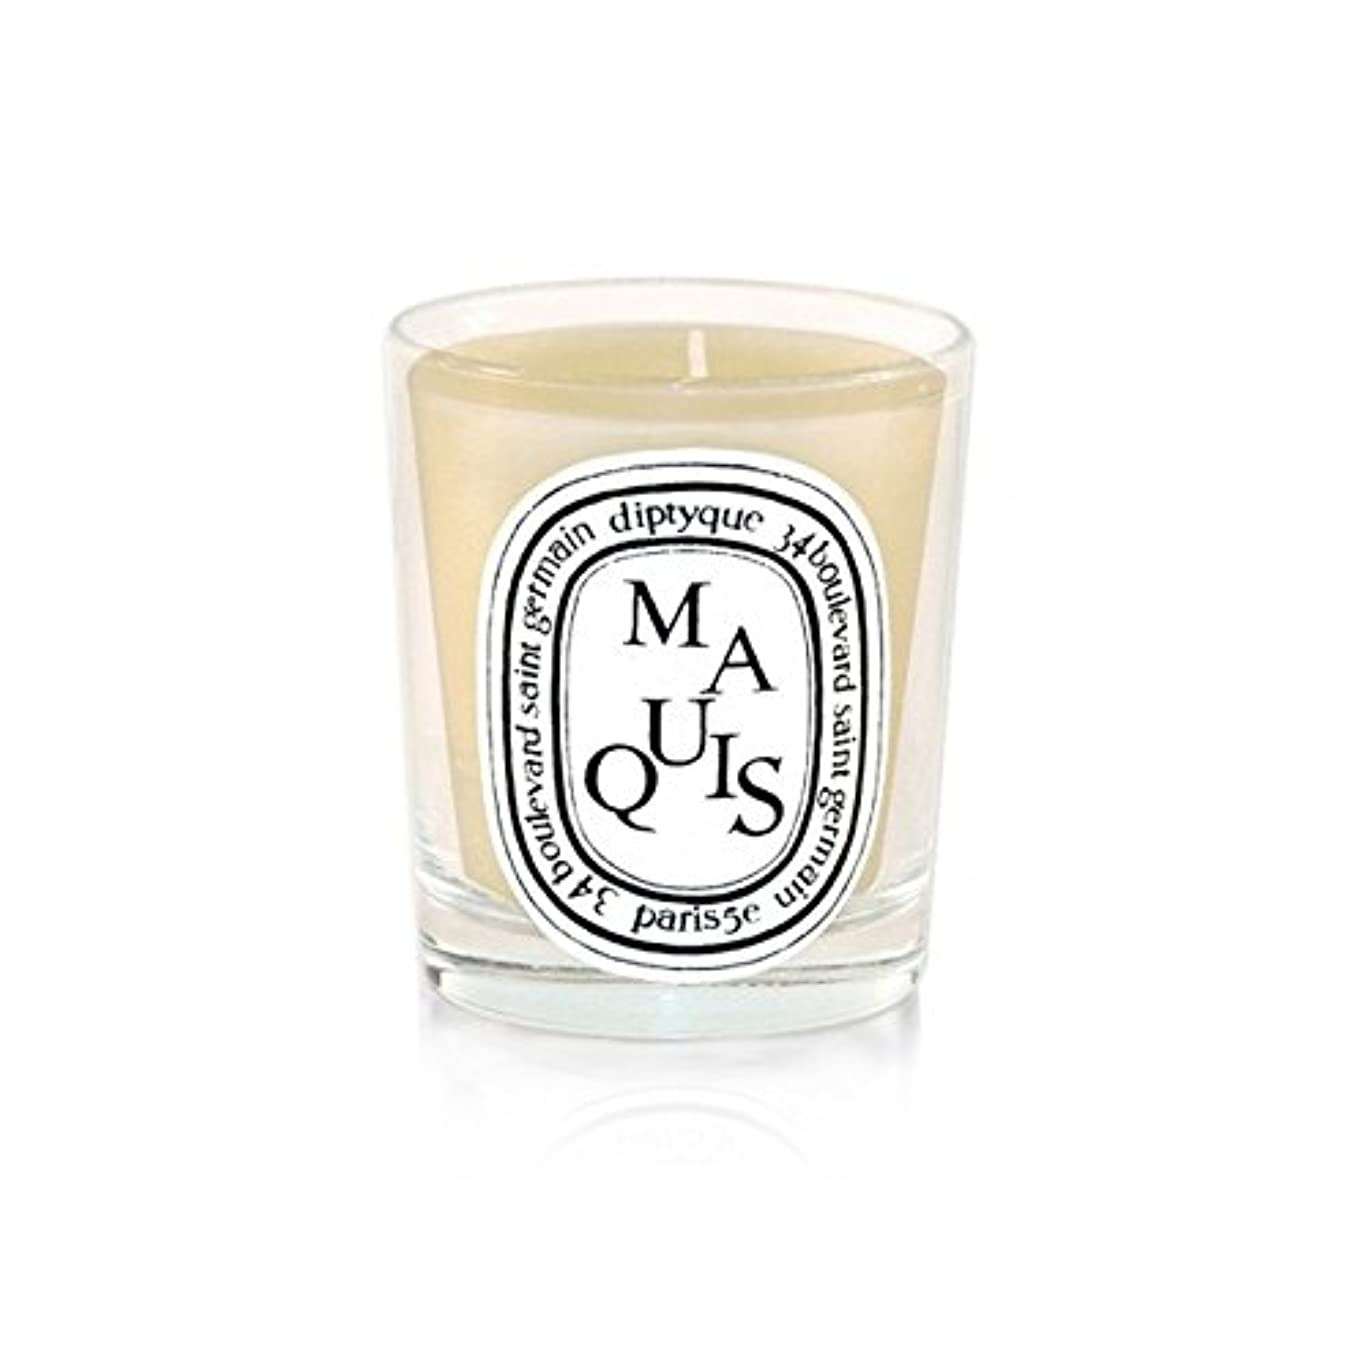 Diptyque Candle Maquis / Maquis 190g (Pack of 2) - Diptyqueキャンドルマキ/マキ190グラム (x2) [並行輸入品]